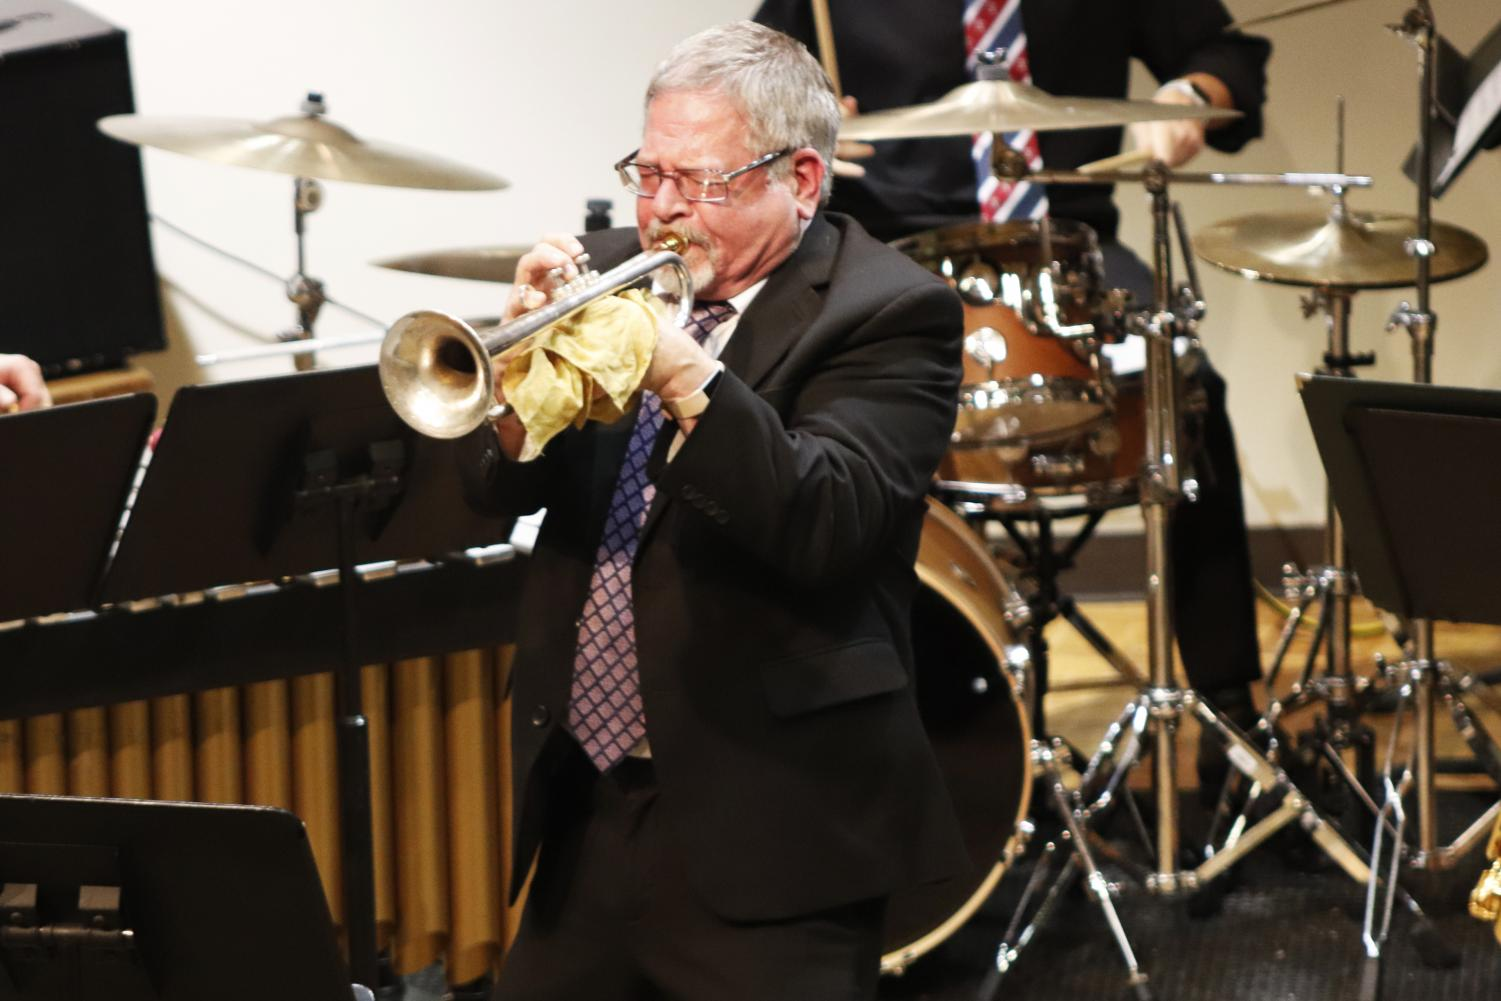 Mike Williams, a native of Louisiana, is known for his position as lead trumpet in the Count Basie Orchestra. He joined the University Jazz Ensemble and Jazz Lab Band as a guest artist in their final concert of the fall 2019 semester on Wednesday, Nov. 20.